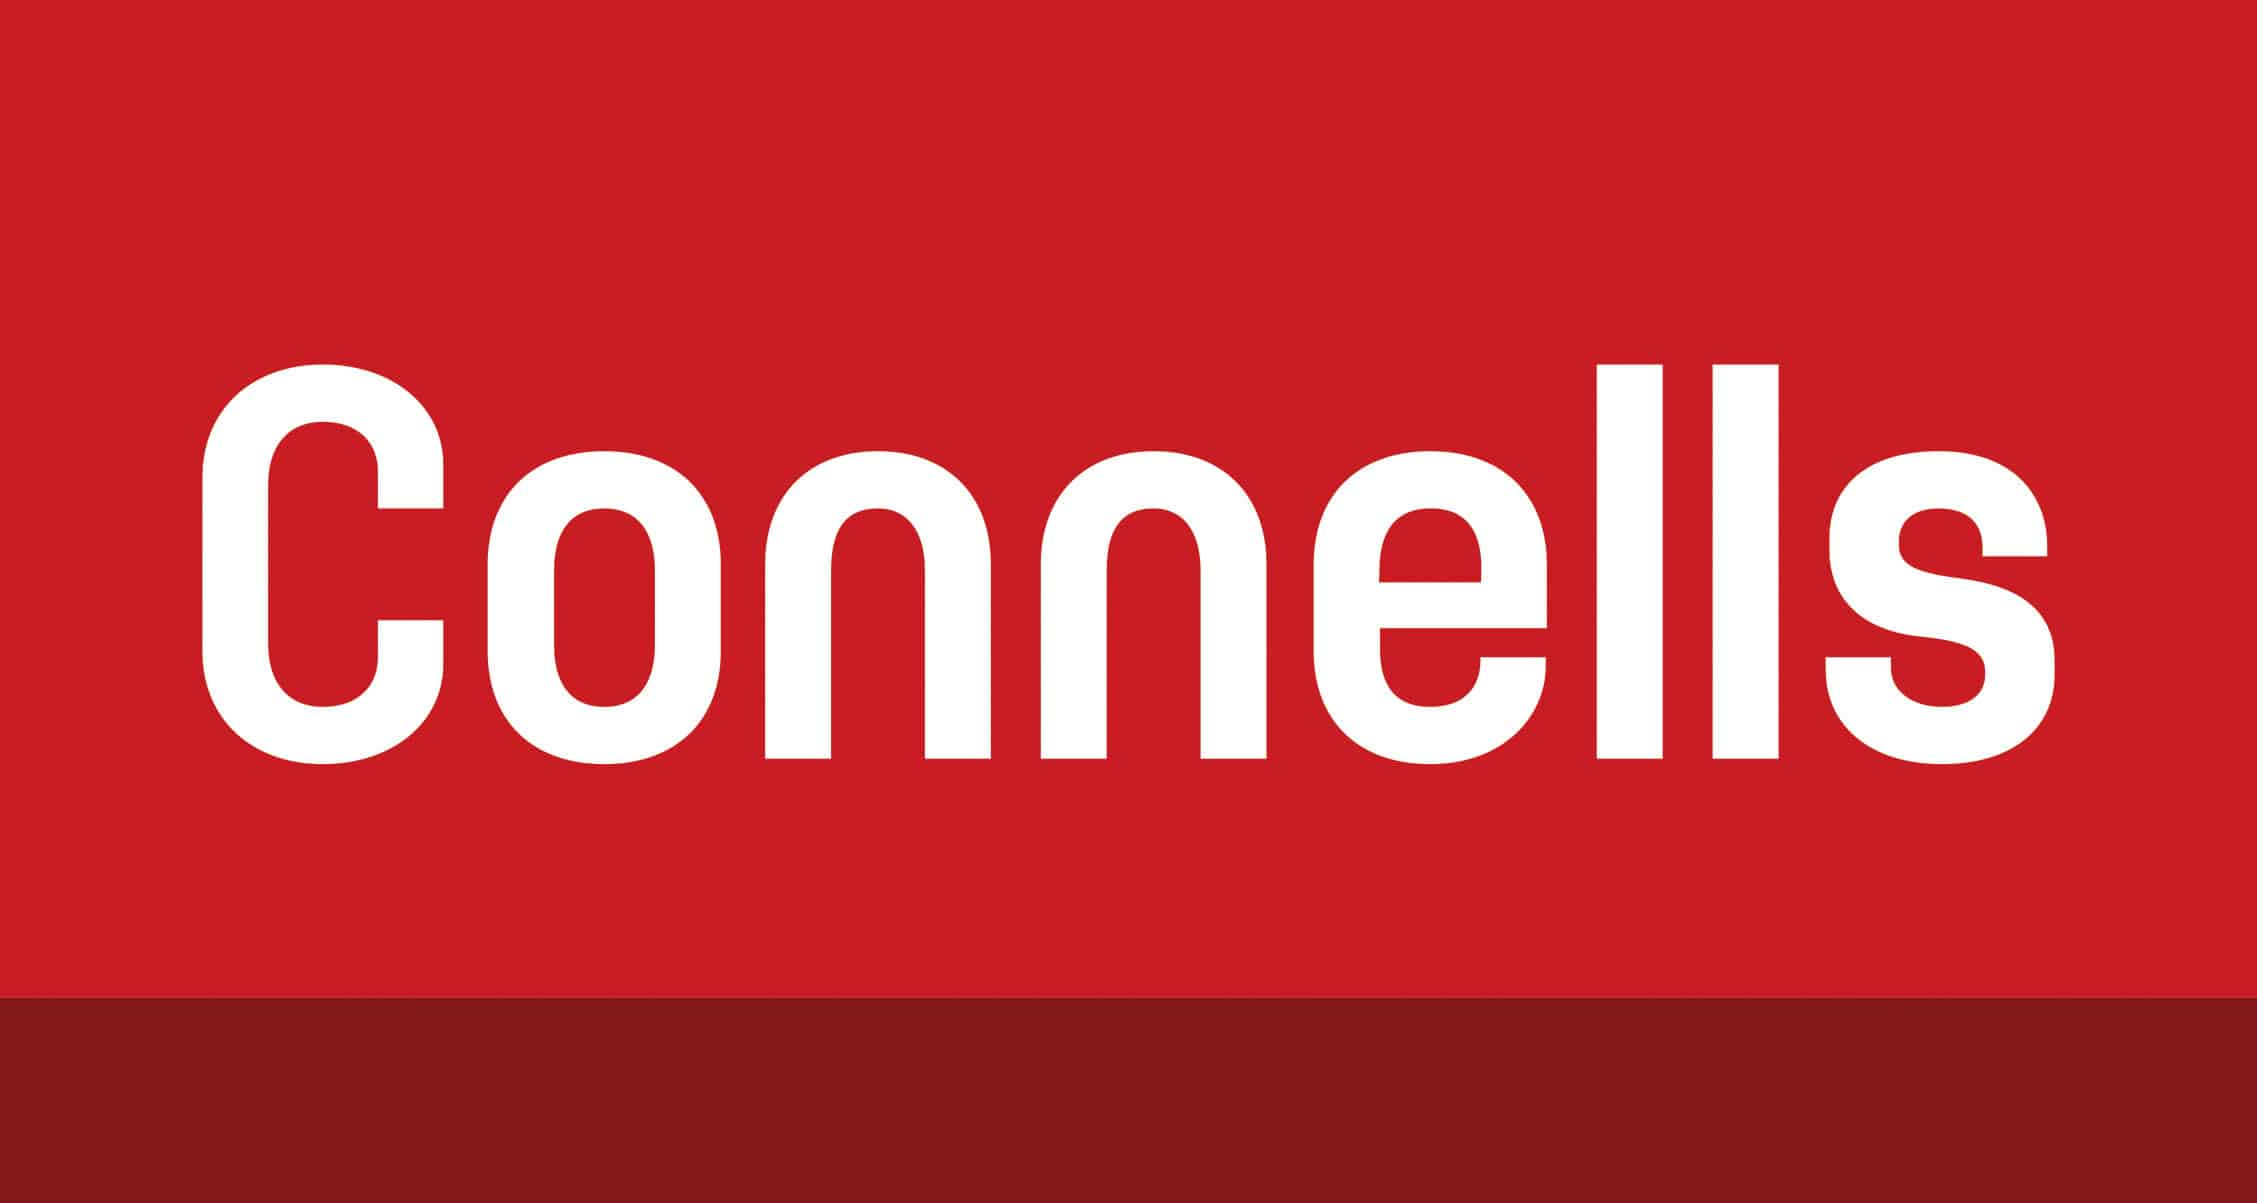 http://plymouthpropertymaintenance.co.uk/wp-content/uploads/2019/11/Connells-Logo-Large.jpg